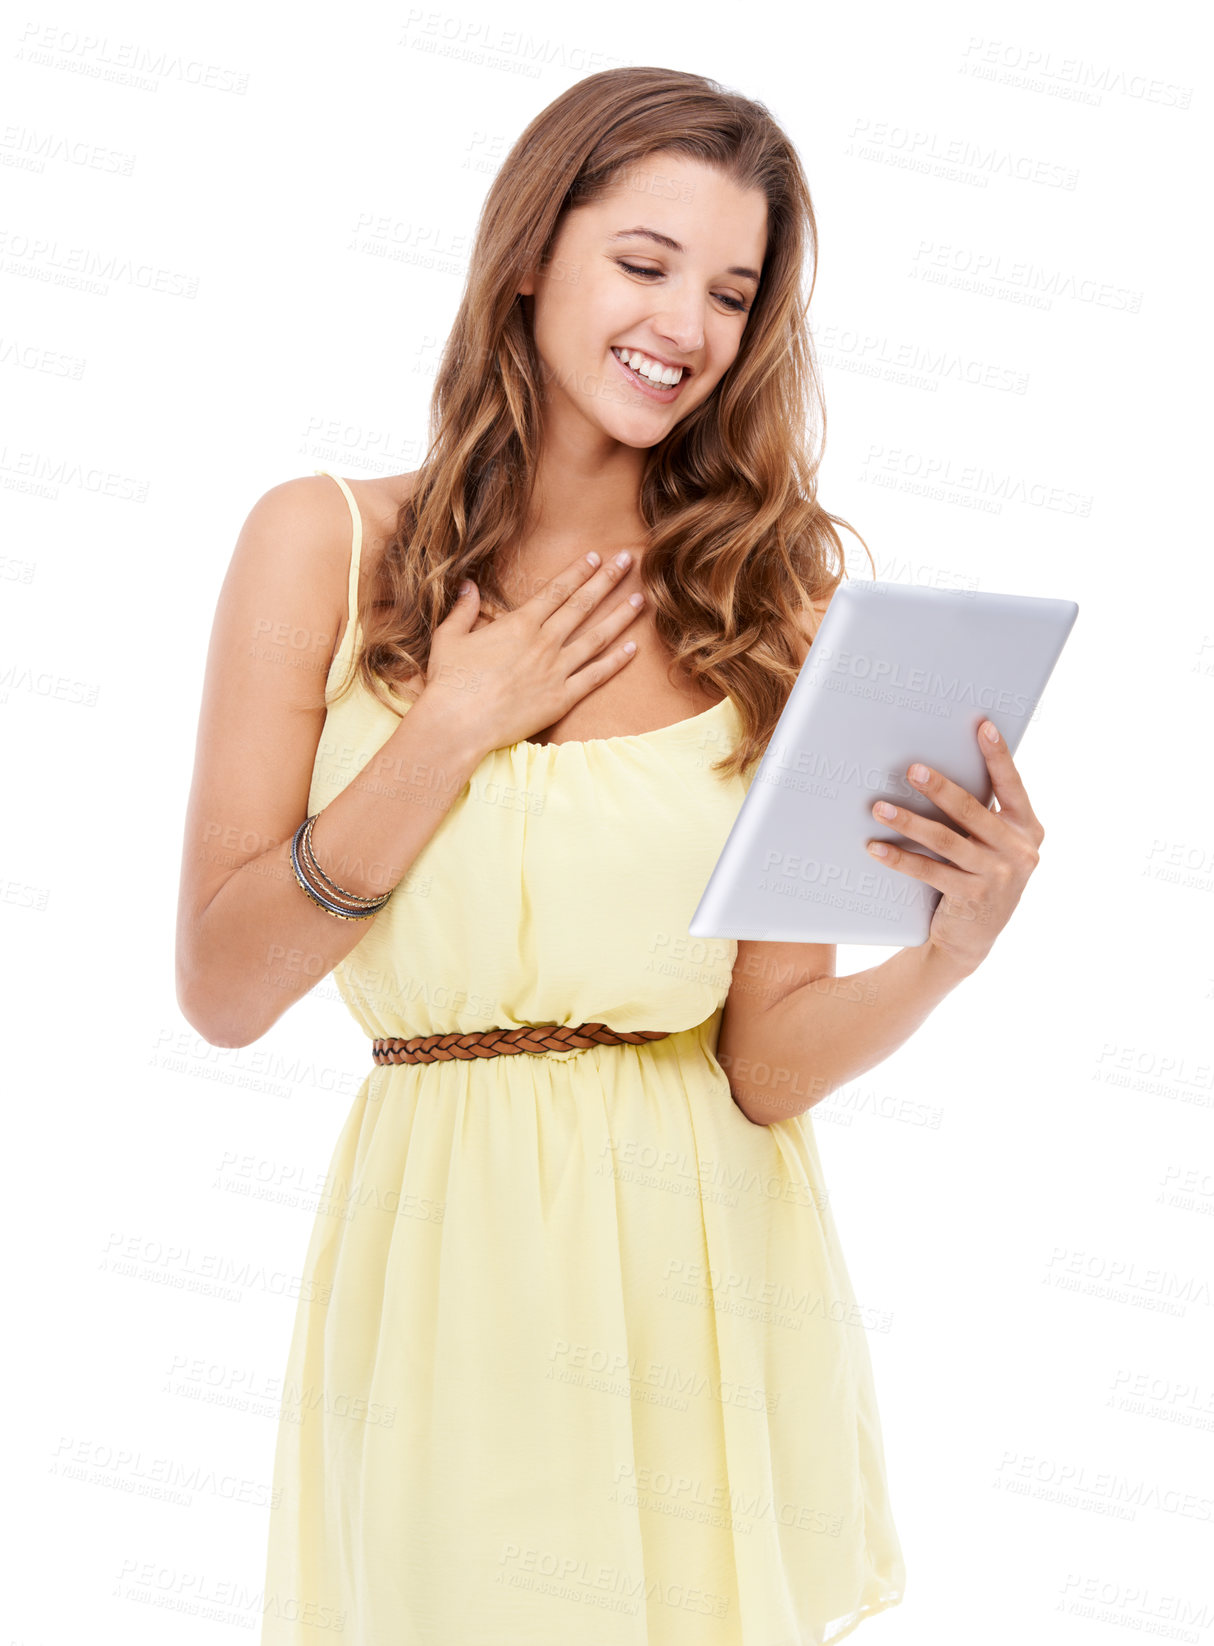 Buy stock photo An attractive young woman holding a digital tablet